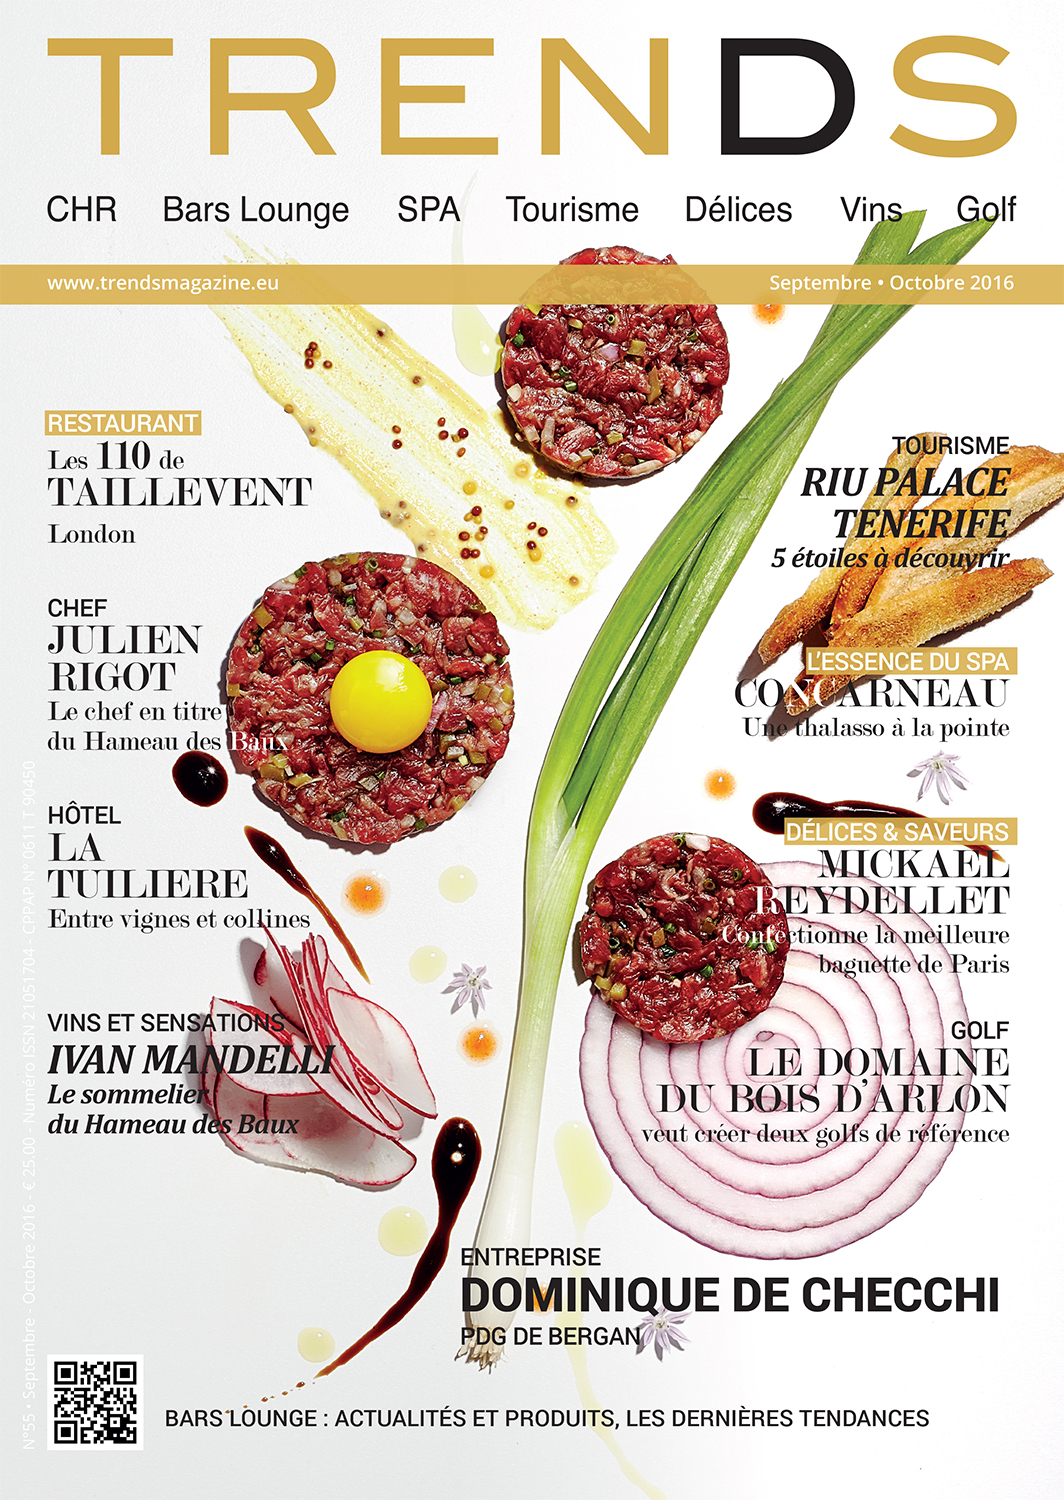 Trends Magazine Cover - Sept-Oct 2016